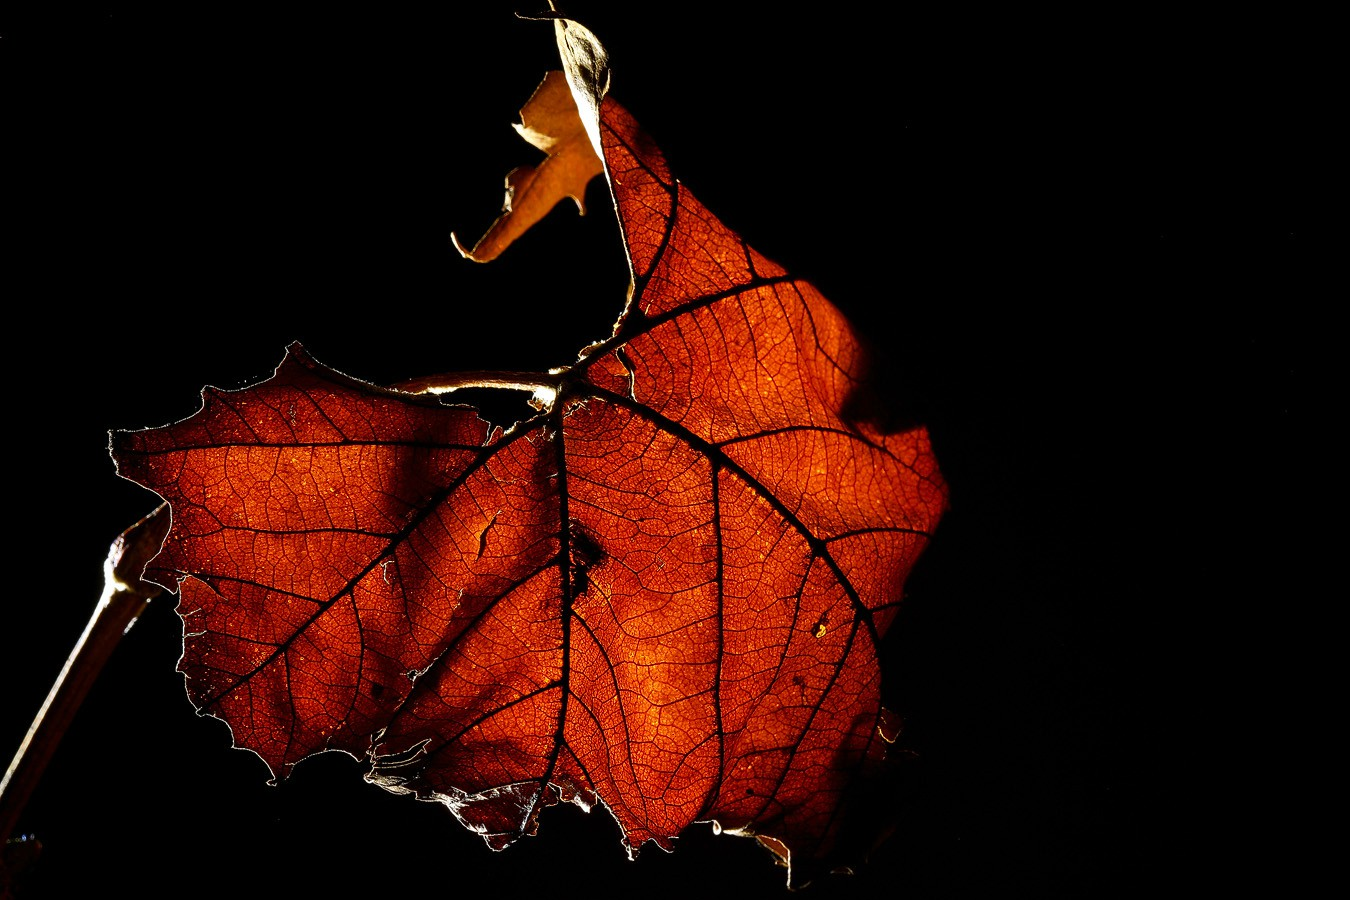 sycamore leaf back lit img aw author sava gregory and verena